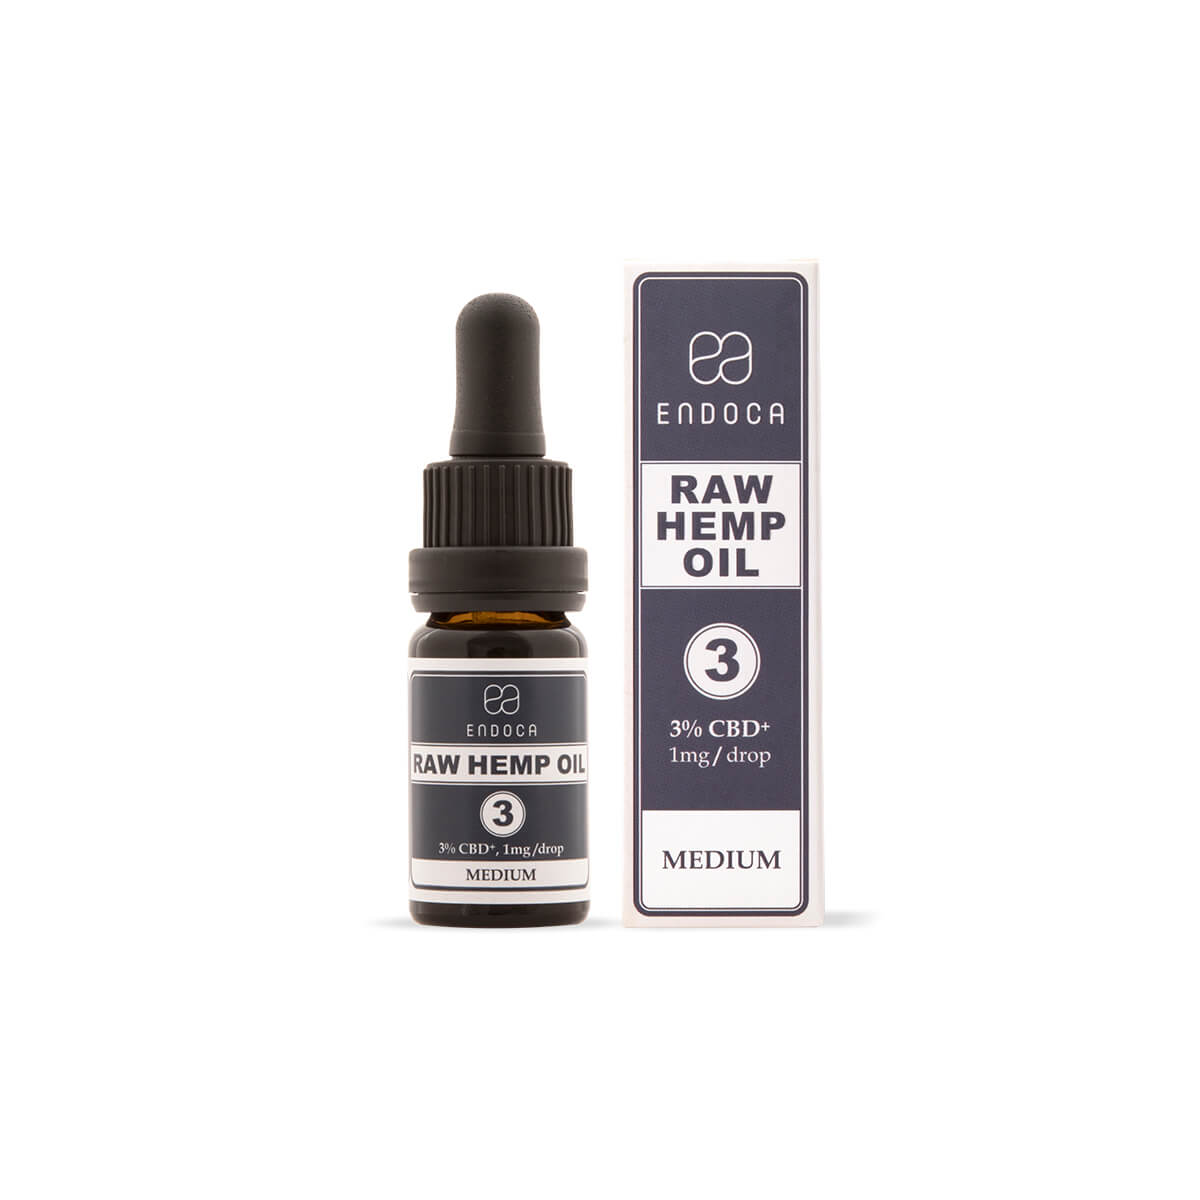 RAW Hemp Oil Drops 300mg CBD + CBDa (3%)